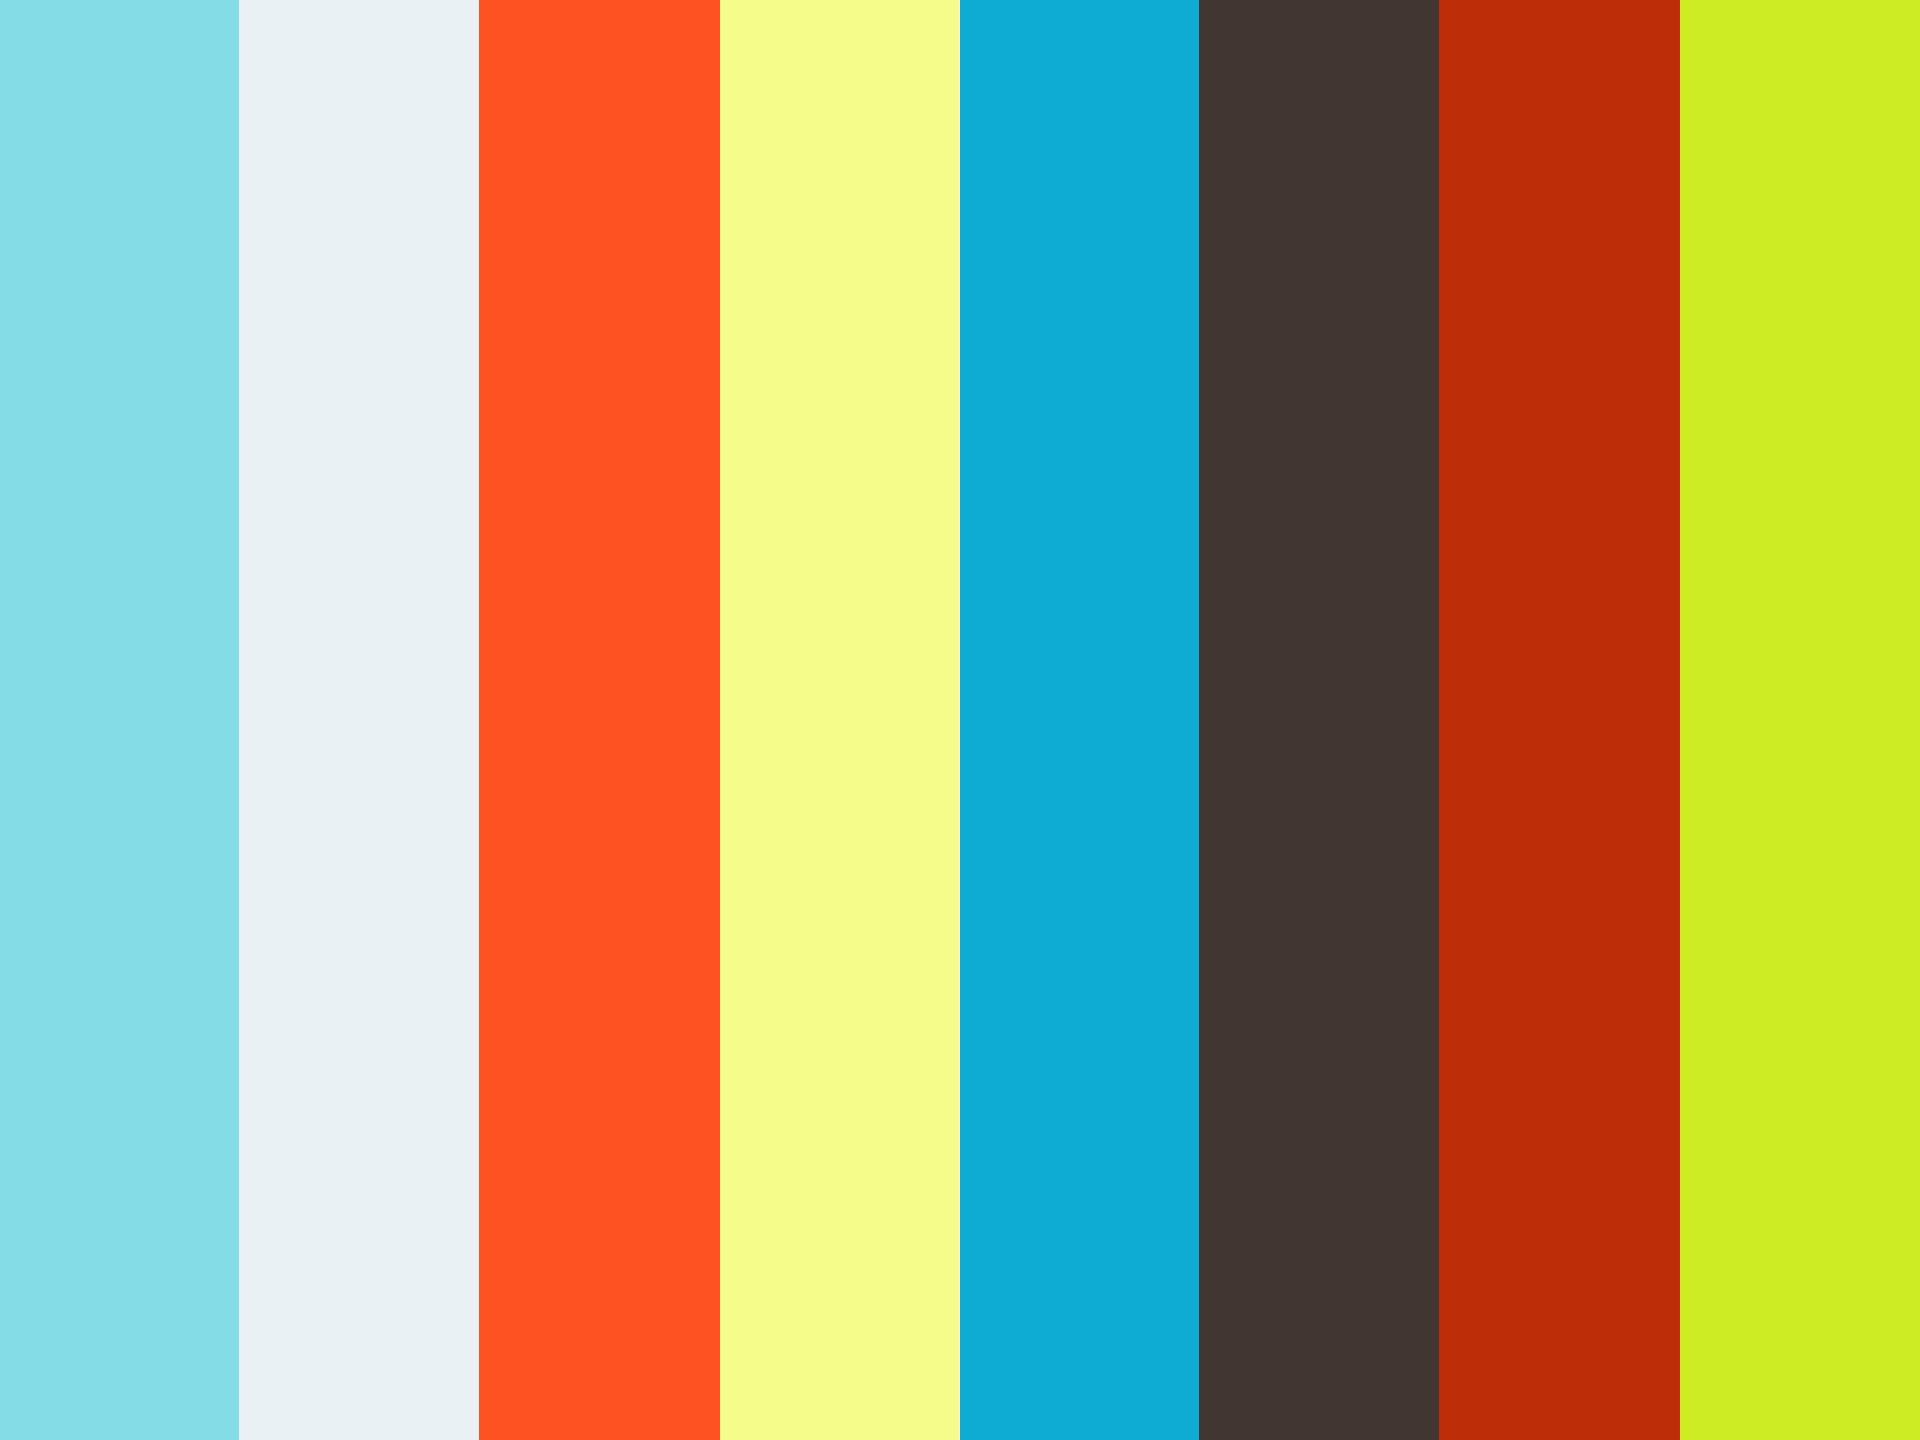 Residual Disease after Endoscopic Resection of Malignant Colonic Polyp 2011